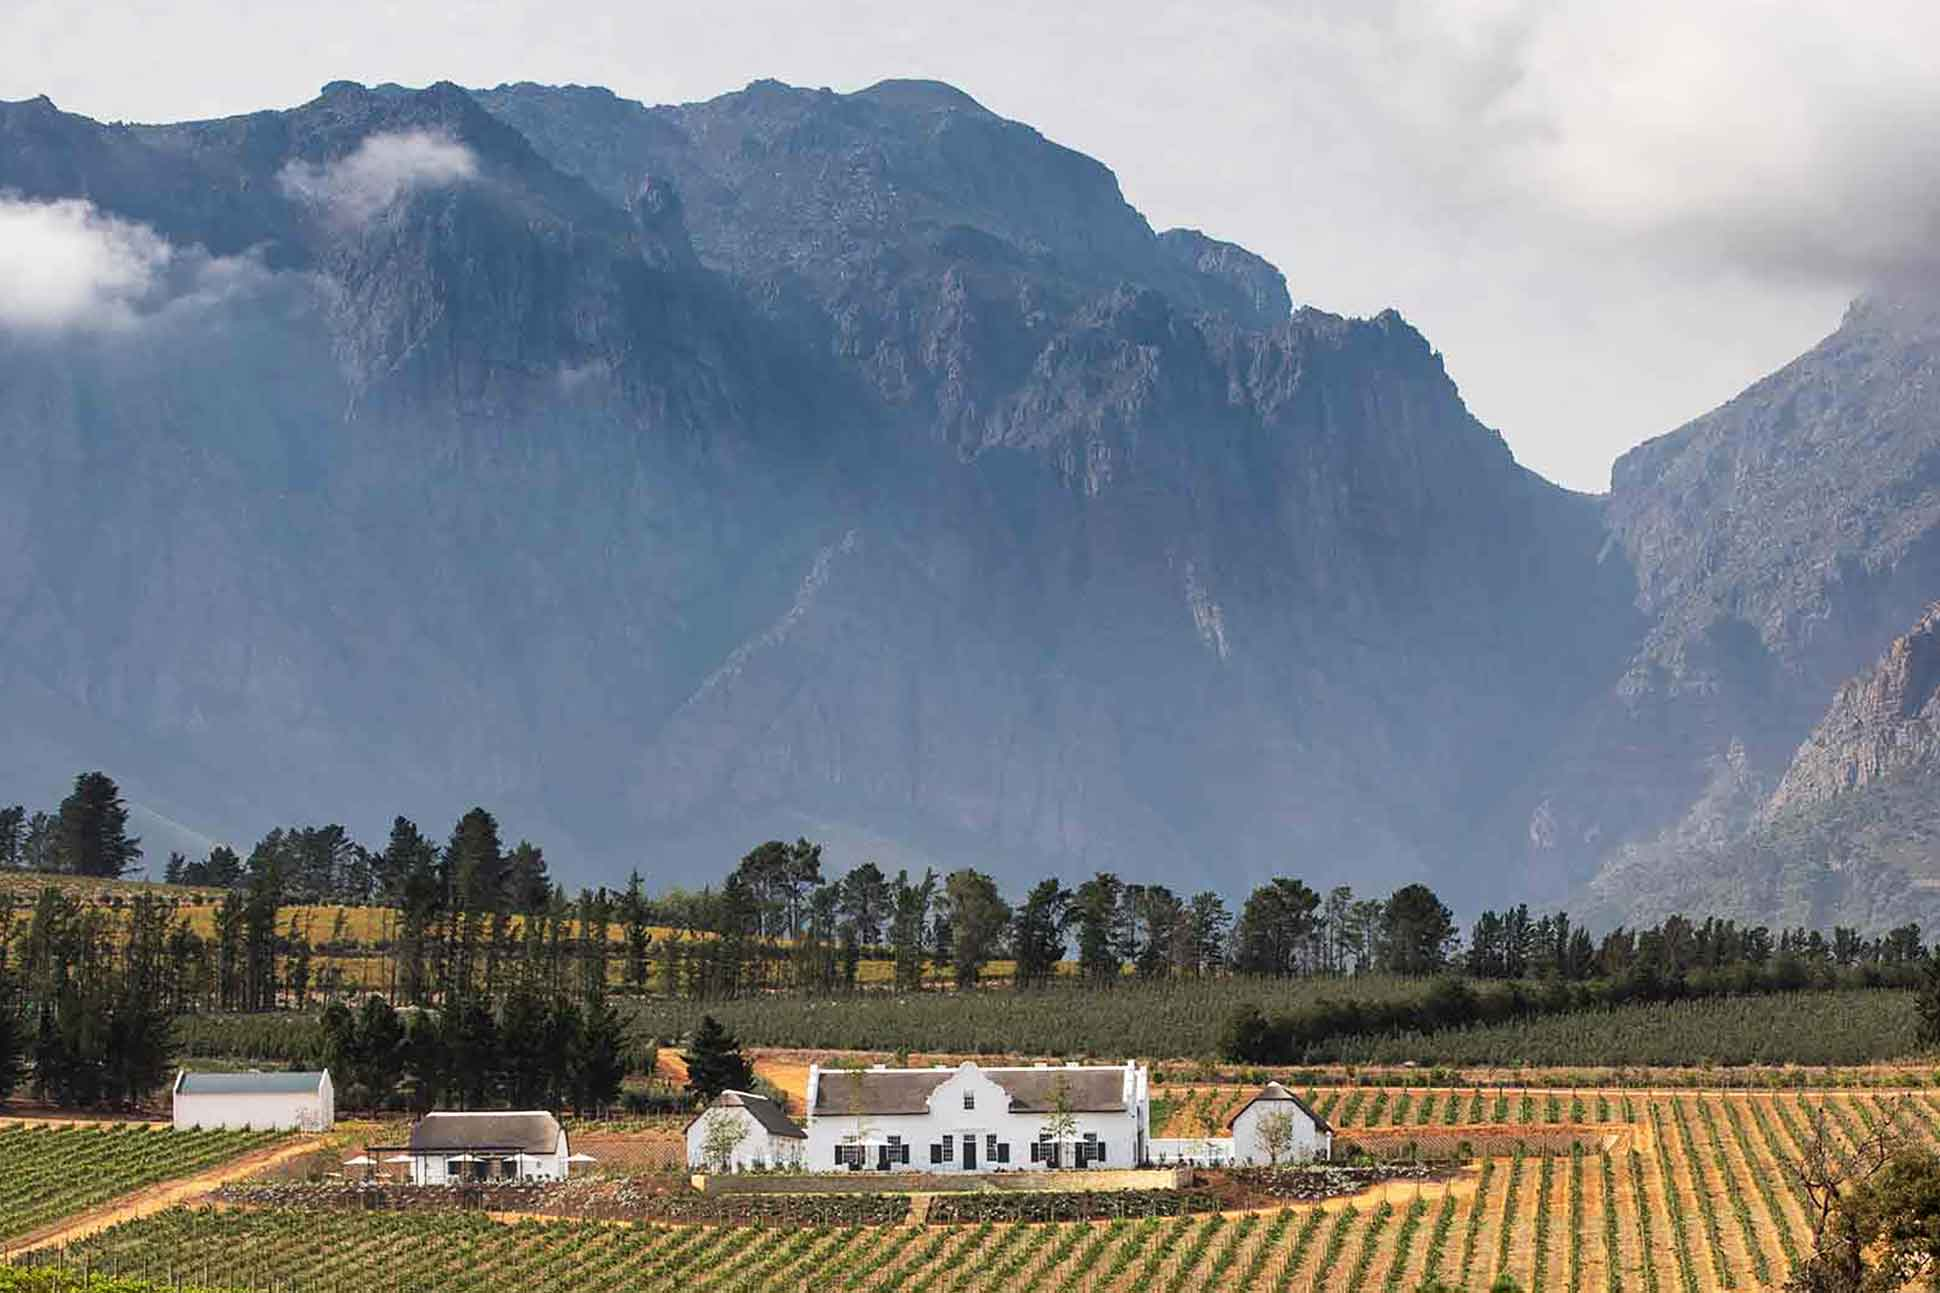 The taste of success <br> Paarl and Franschhoek, South Africa